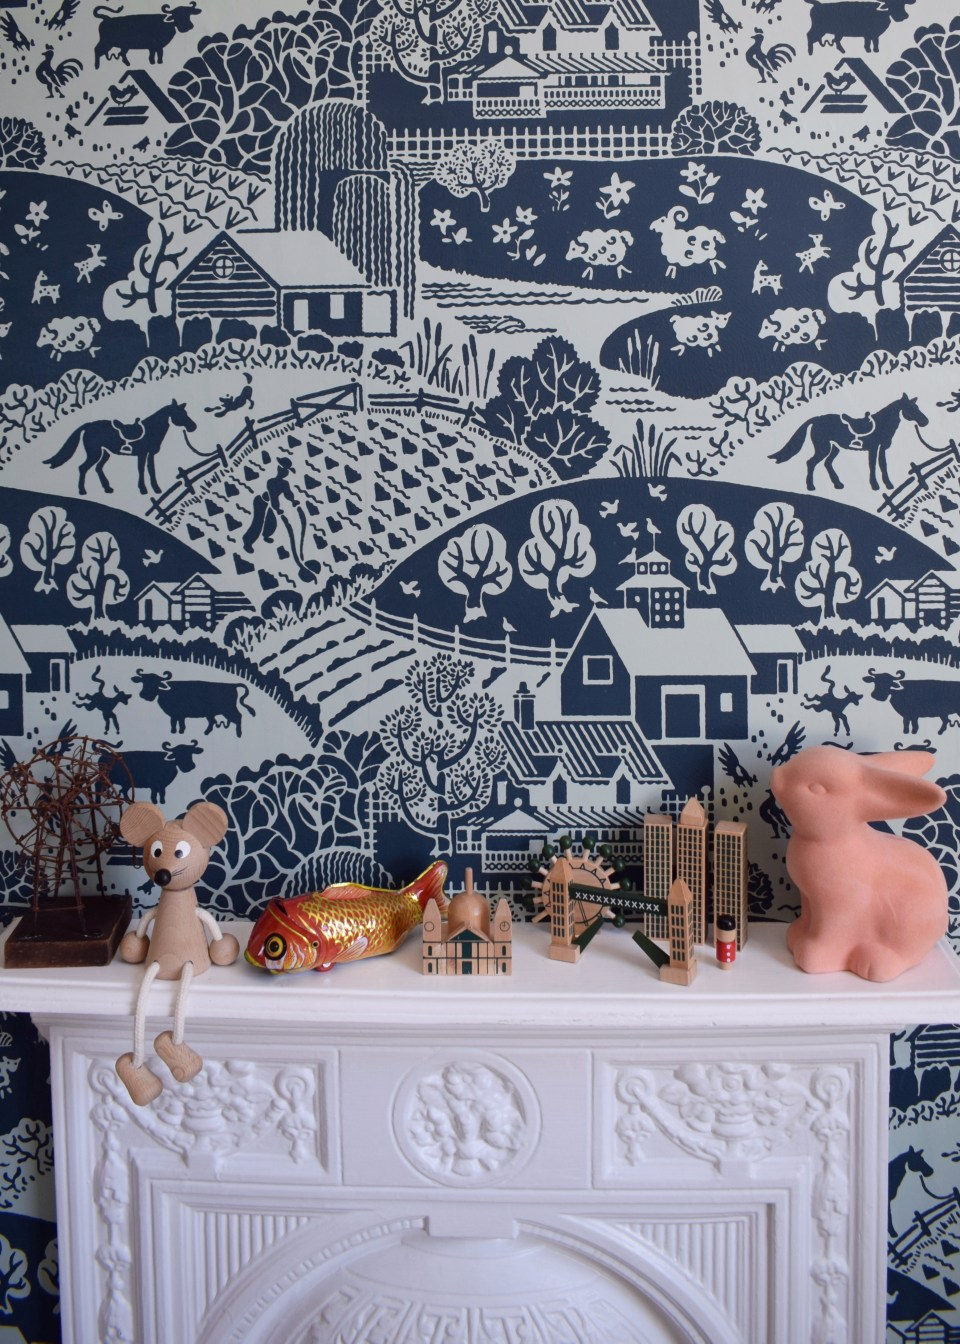 Farrow Ball Gable wallpaper interior ideas, childrens room decor with a scandi monochrome scheme, wooden toys, vintage toys